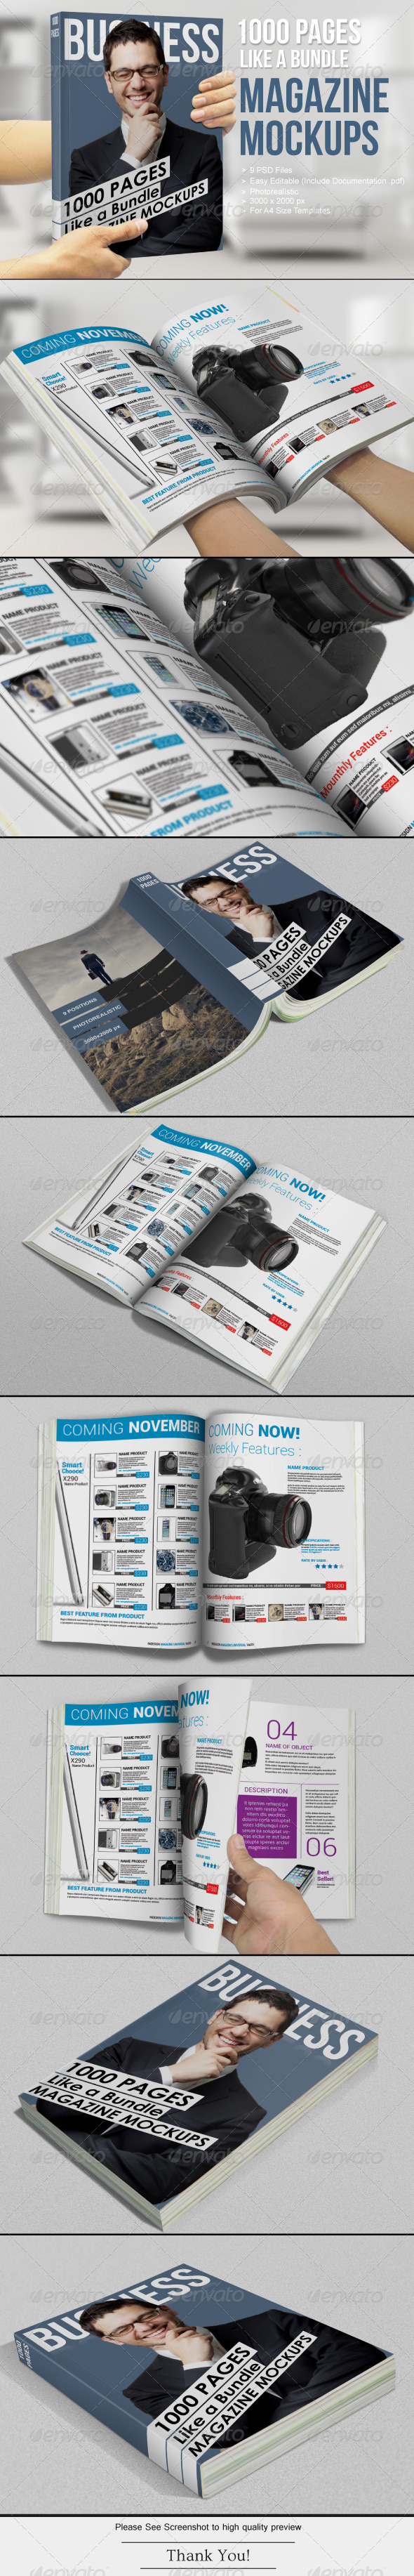 1000 Pages - Magazine Mockups - Magazines Print